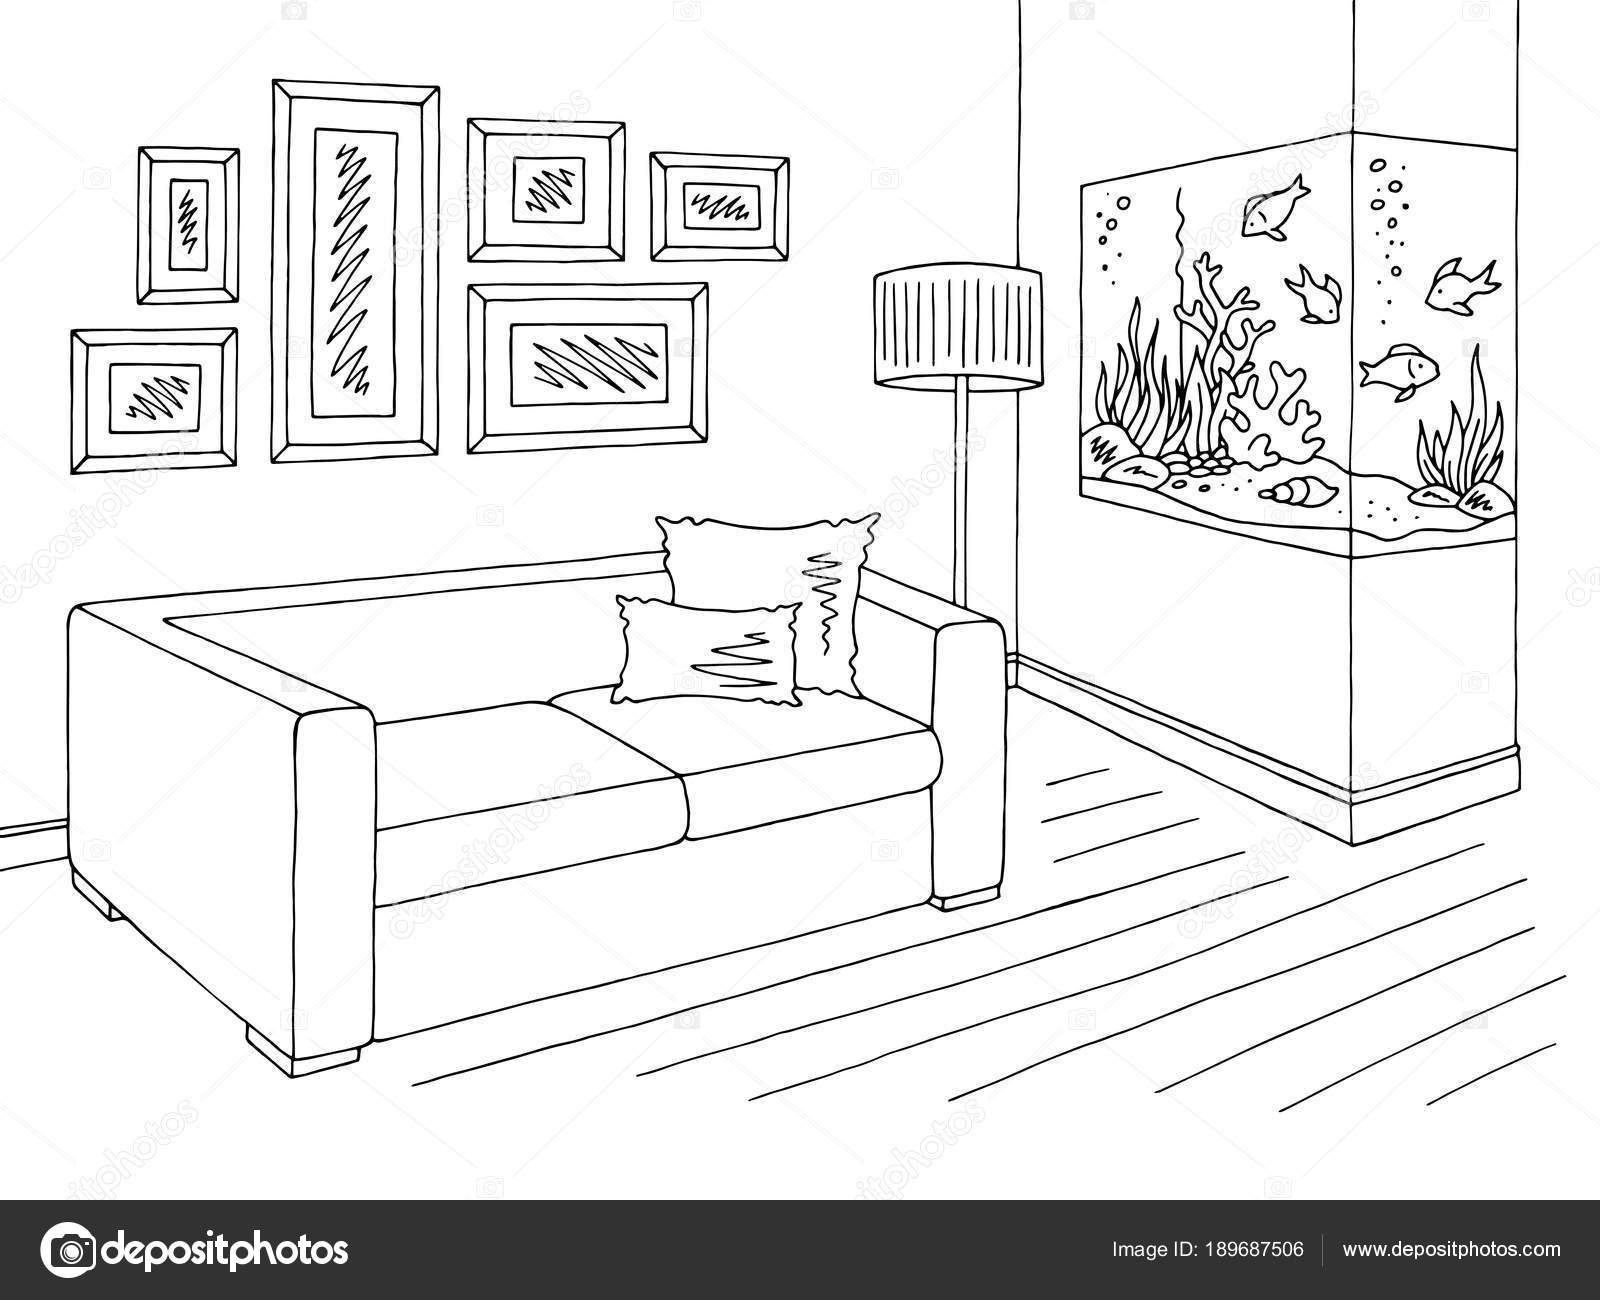 Living Room Graphic Black White Aquarium Interior Sketch ...